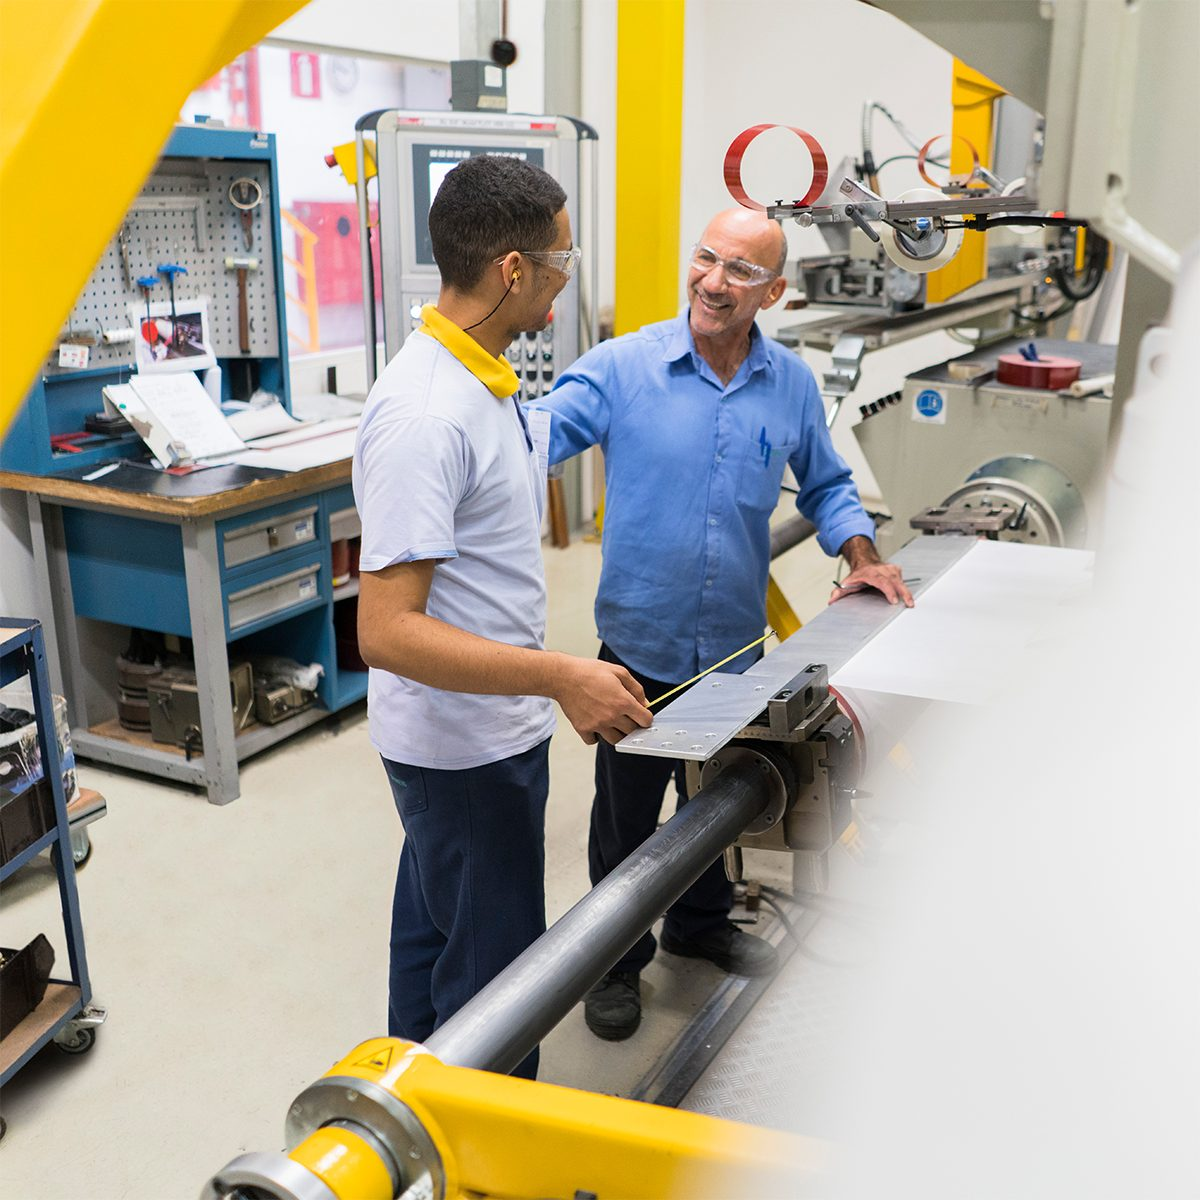 Manufacturing Jobs | What We Do at Siemens | What We Do